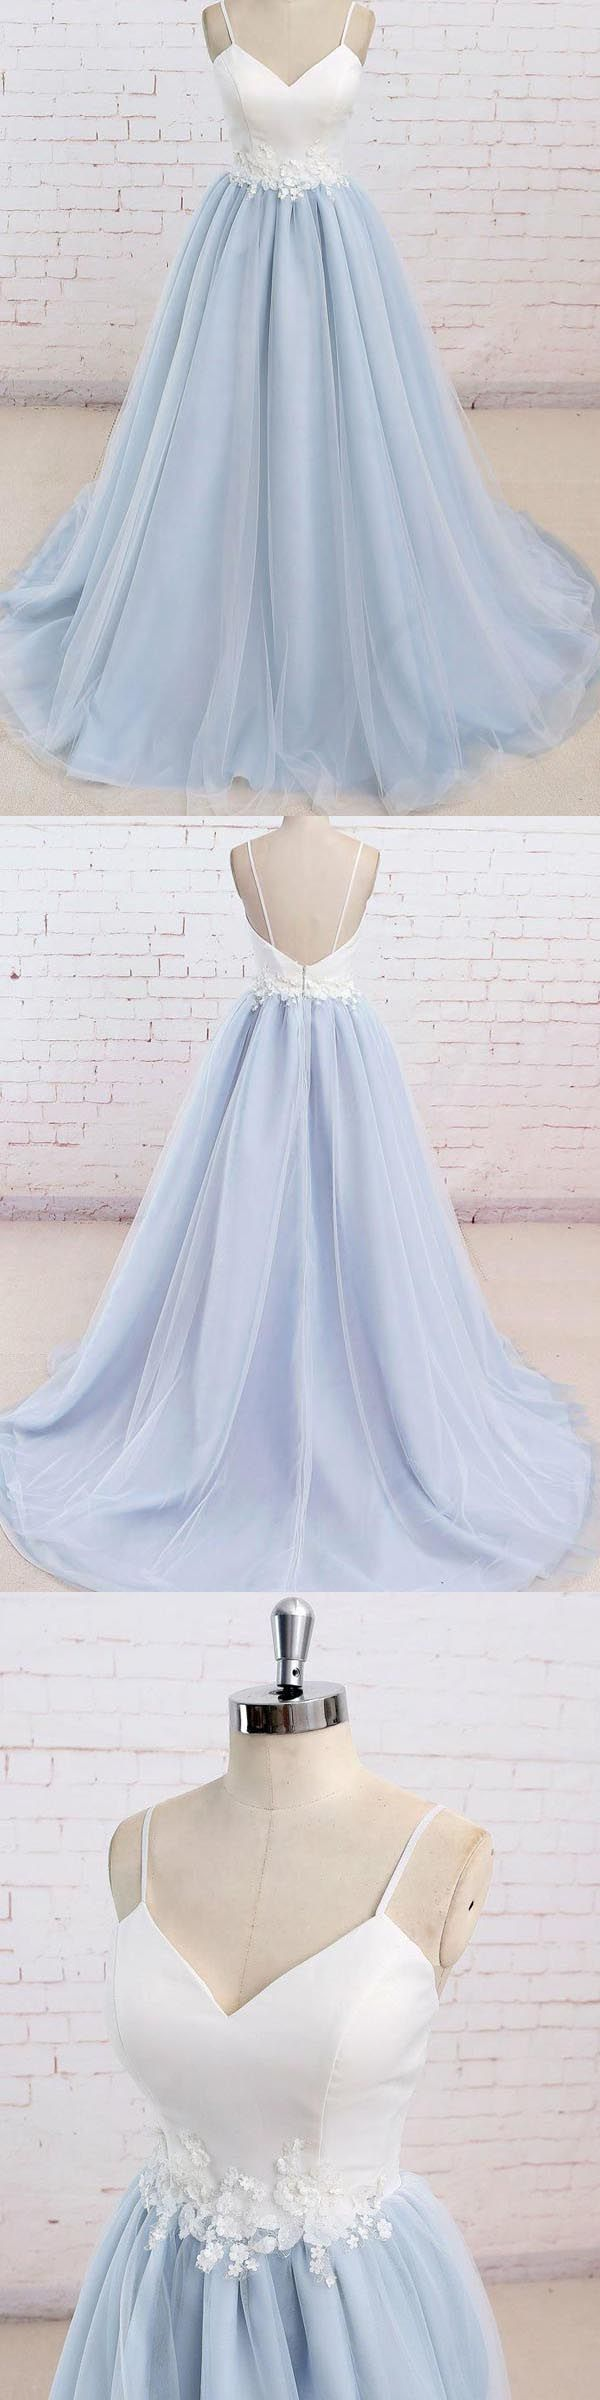 Backless Ball Gown Long Prom Dress Fashion Formal Dress YDP0055